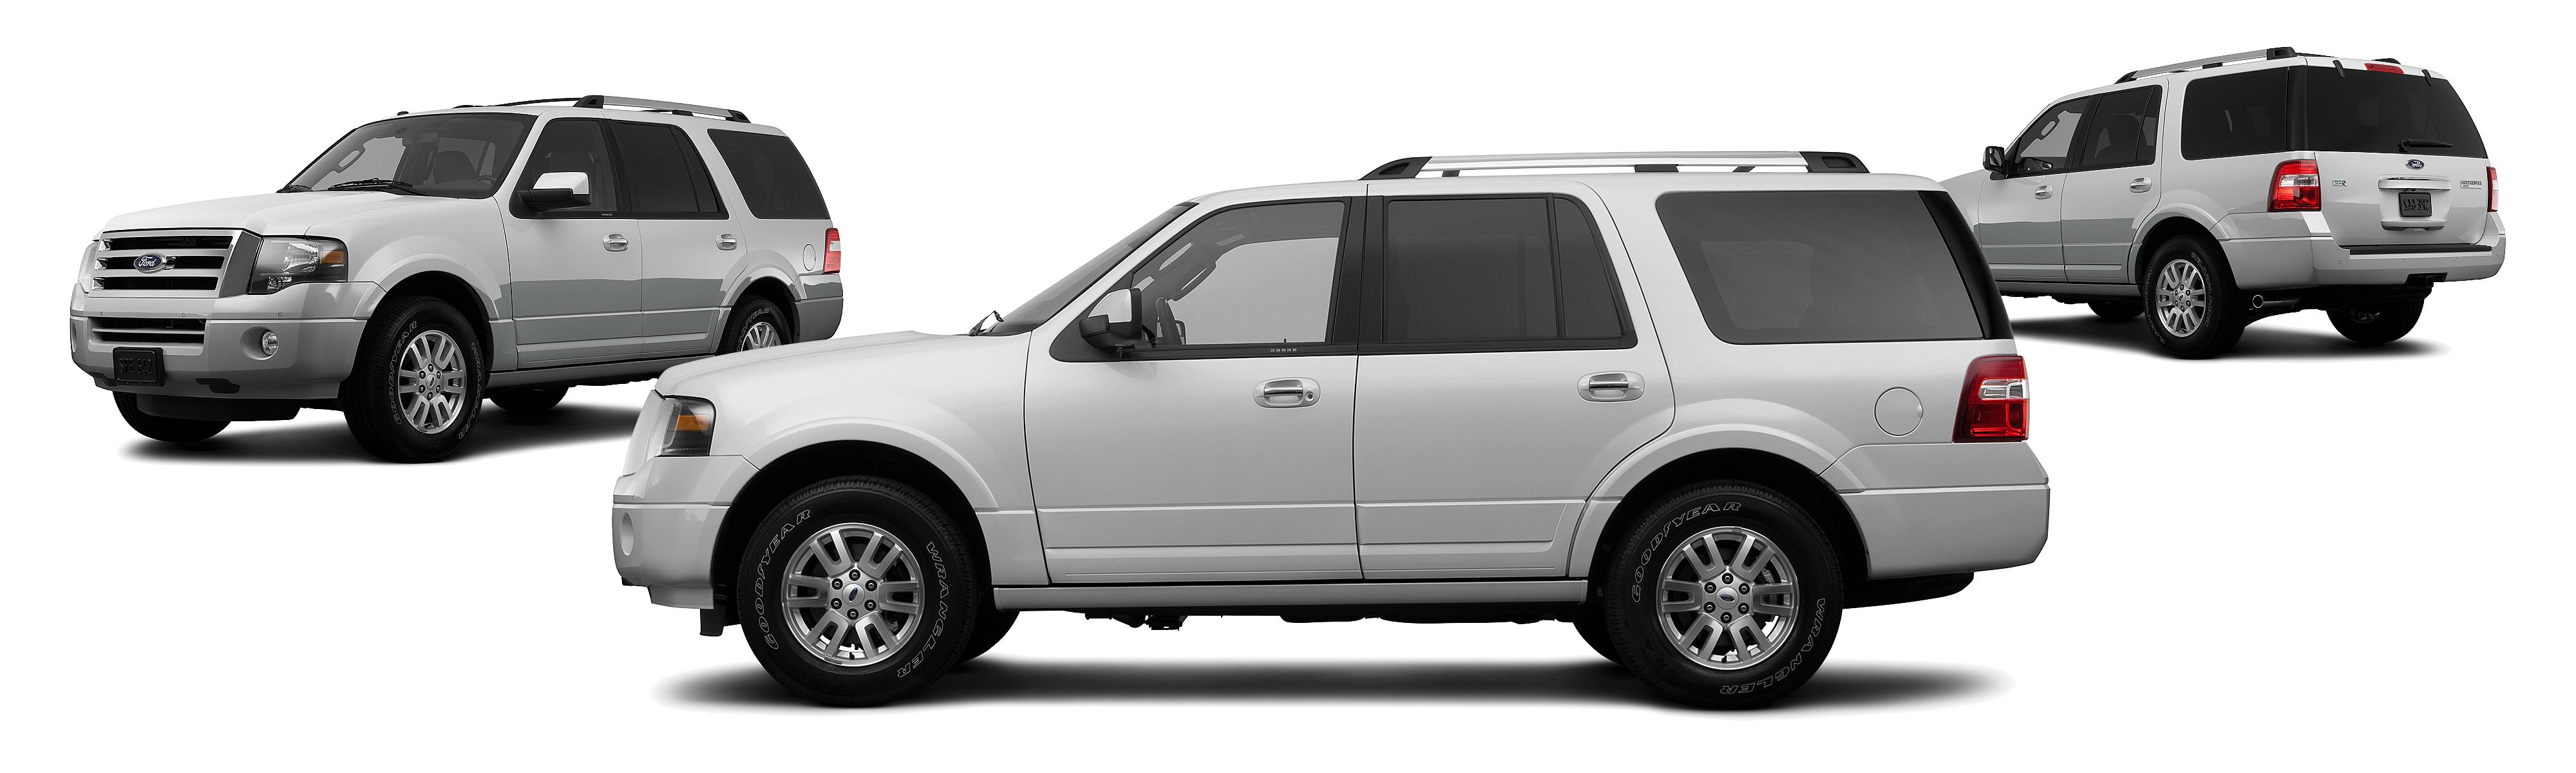 includes lift hi ford products a hinge kit part gate img window new both expedition tail sides number